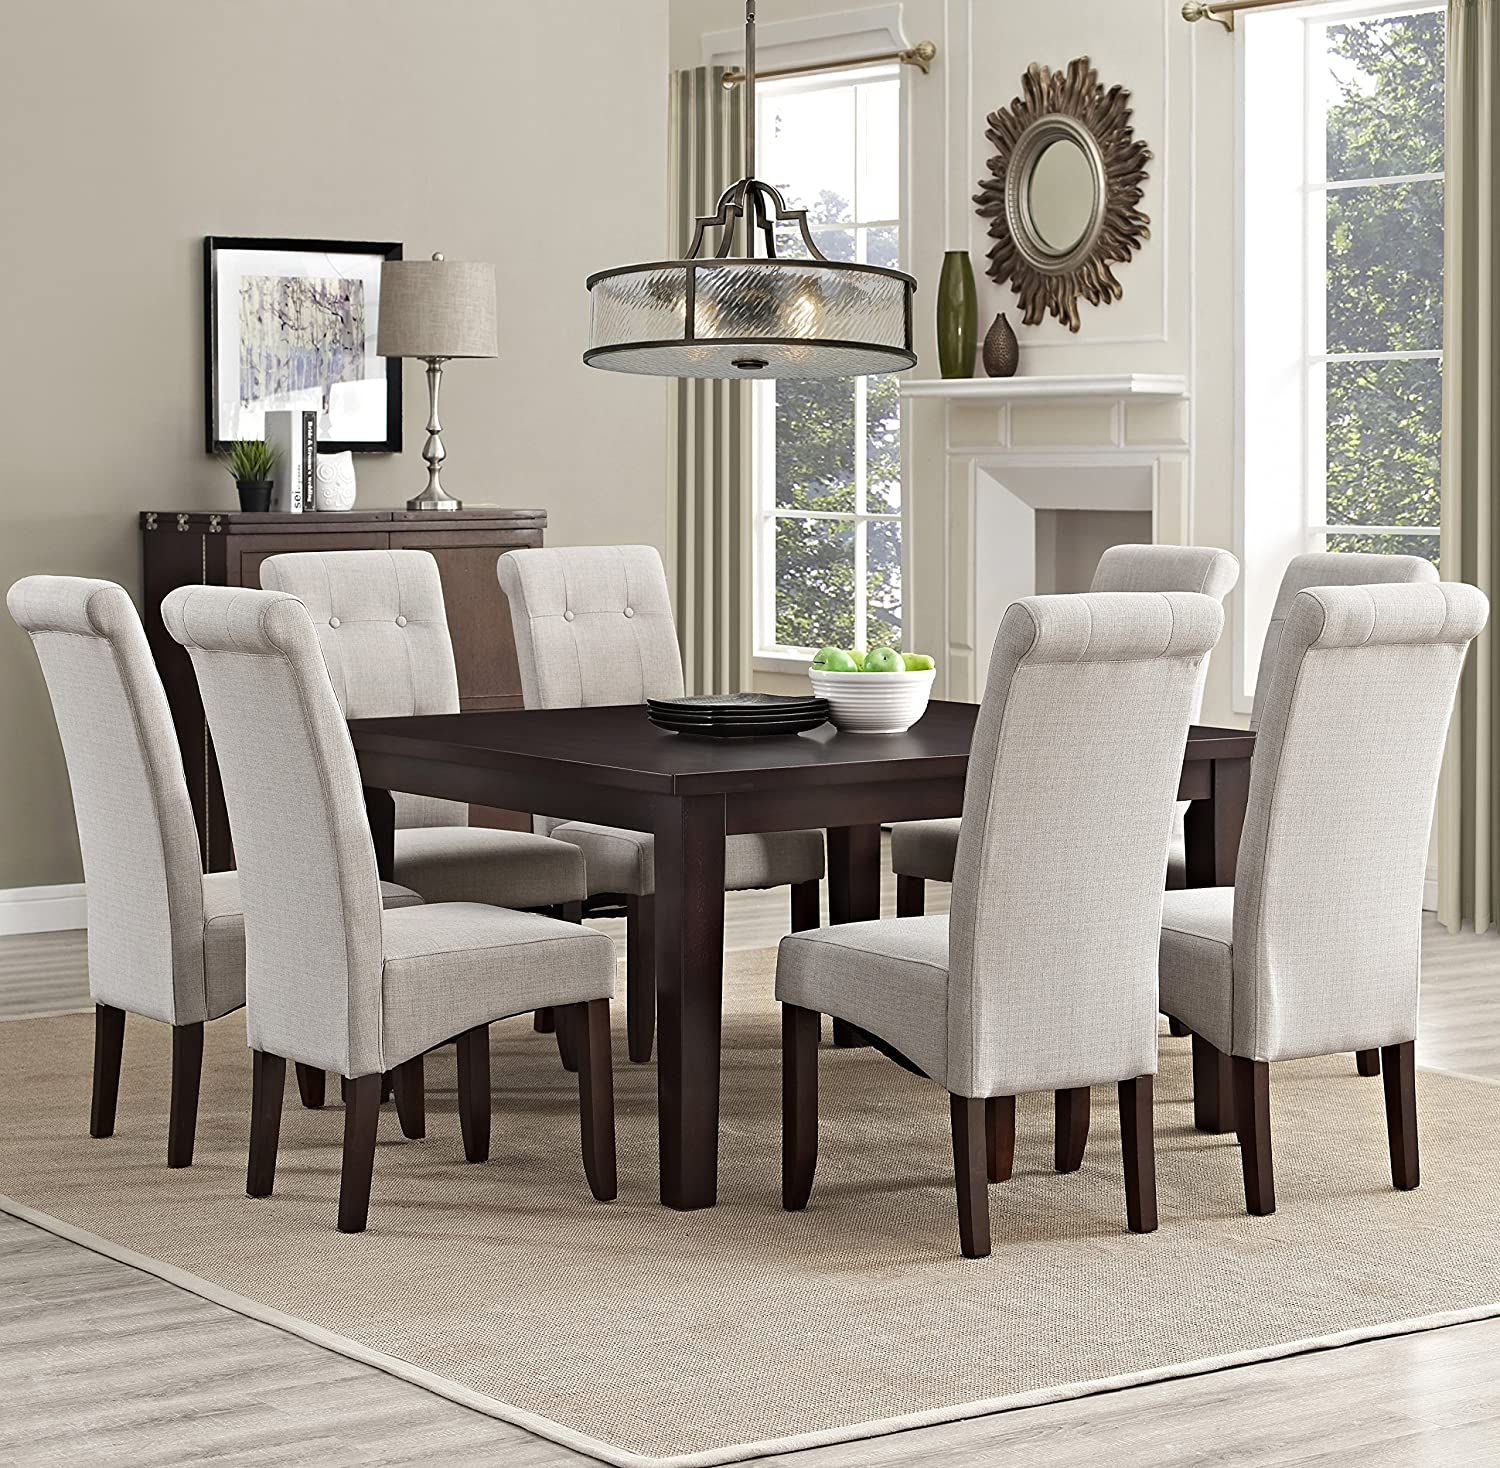 Merveilleux Amazon.com: Simpli Home Cosmopolitan 9 Piece Dining Set, Natural: Kitchen U0026  Dining